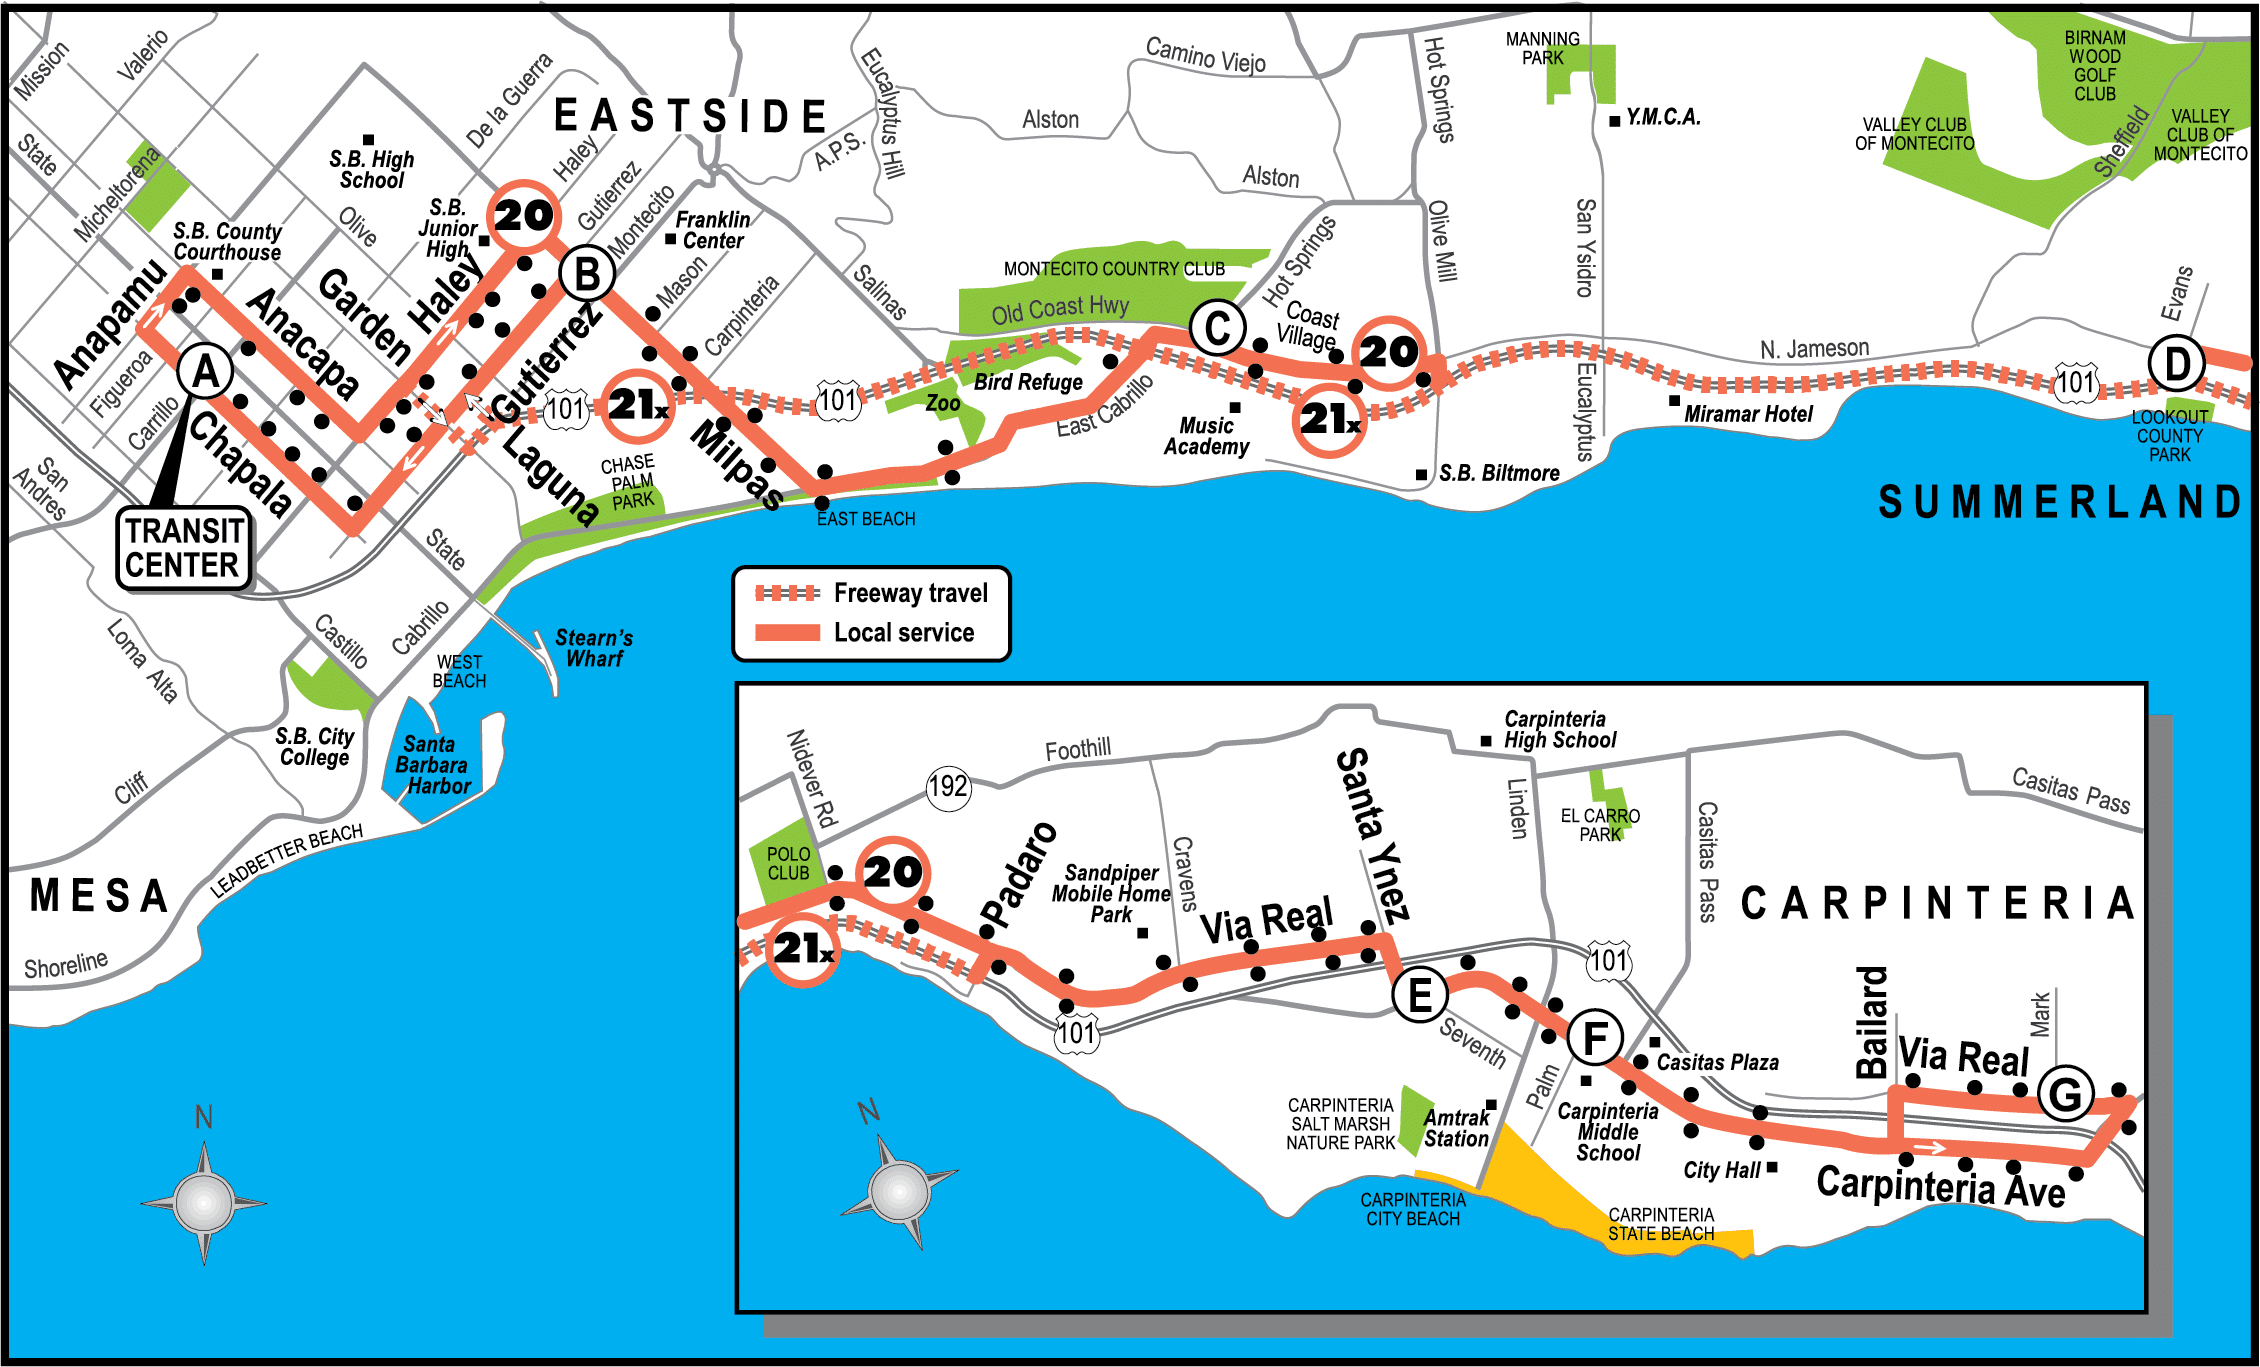 Existing Line 20/21x map